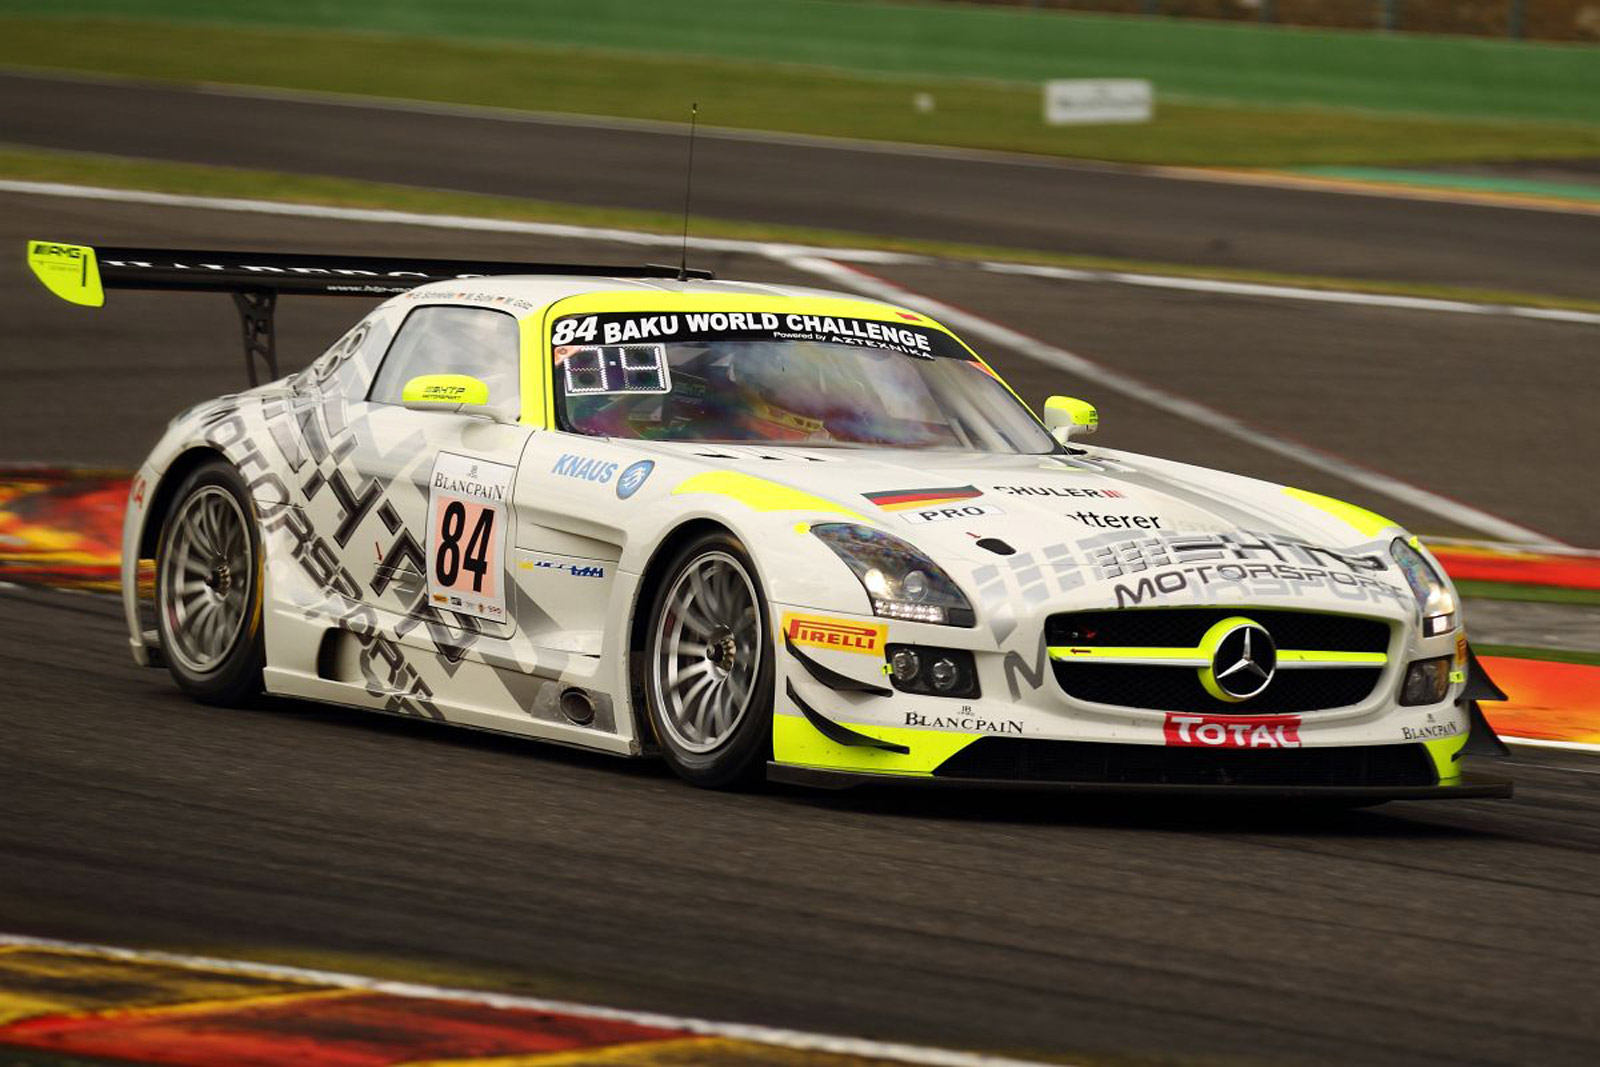 Mercedes Benz Sls Amg Review >> HTP-Motorsport Drives Mercedes SLS AMG GT3 To Spa 24 Hours Victory